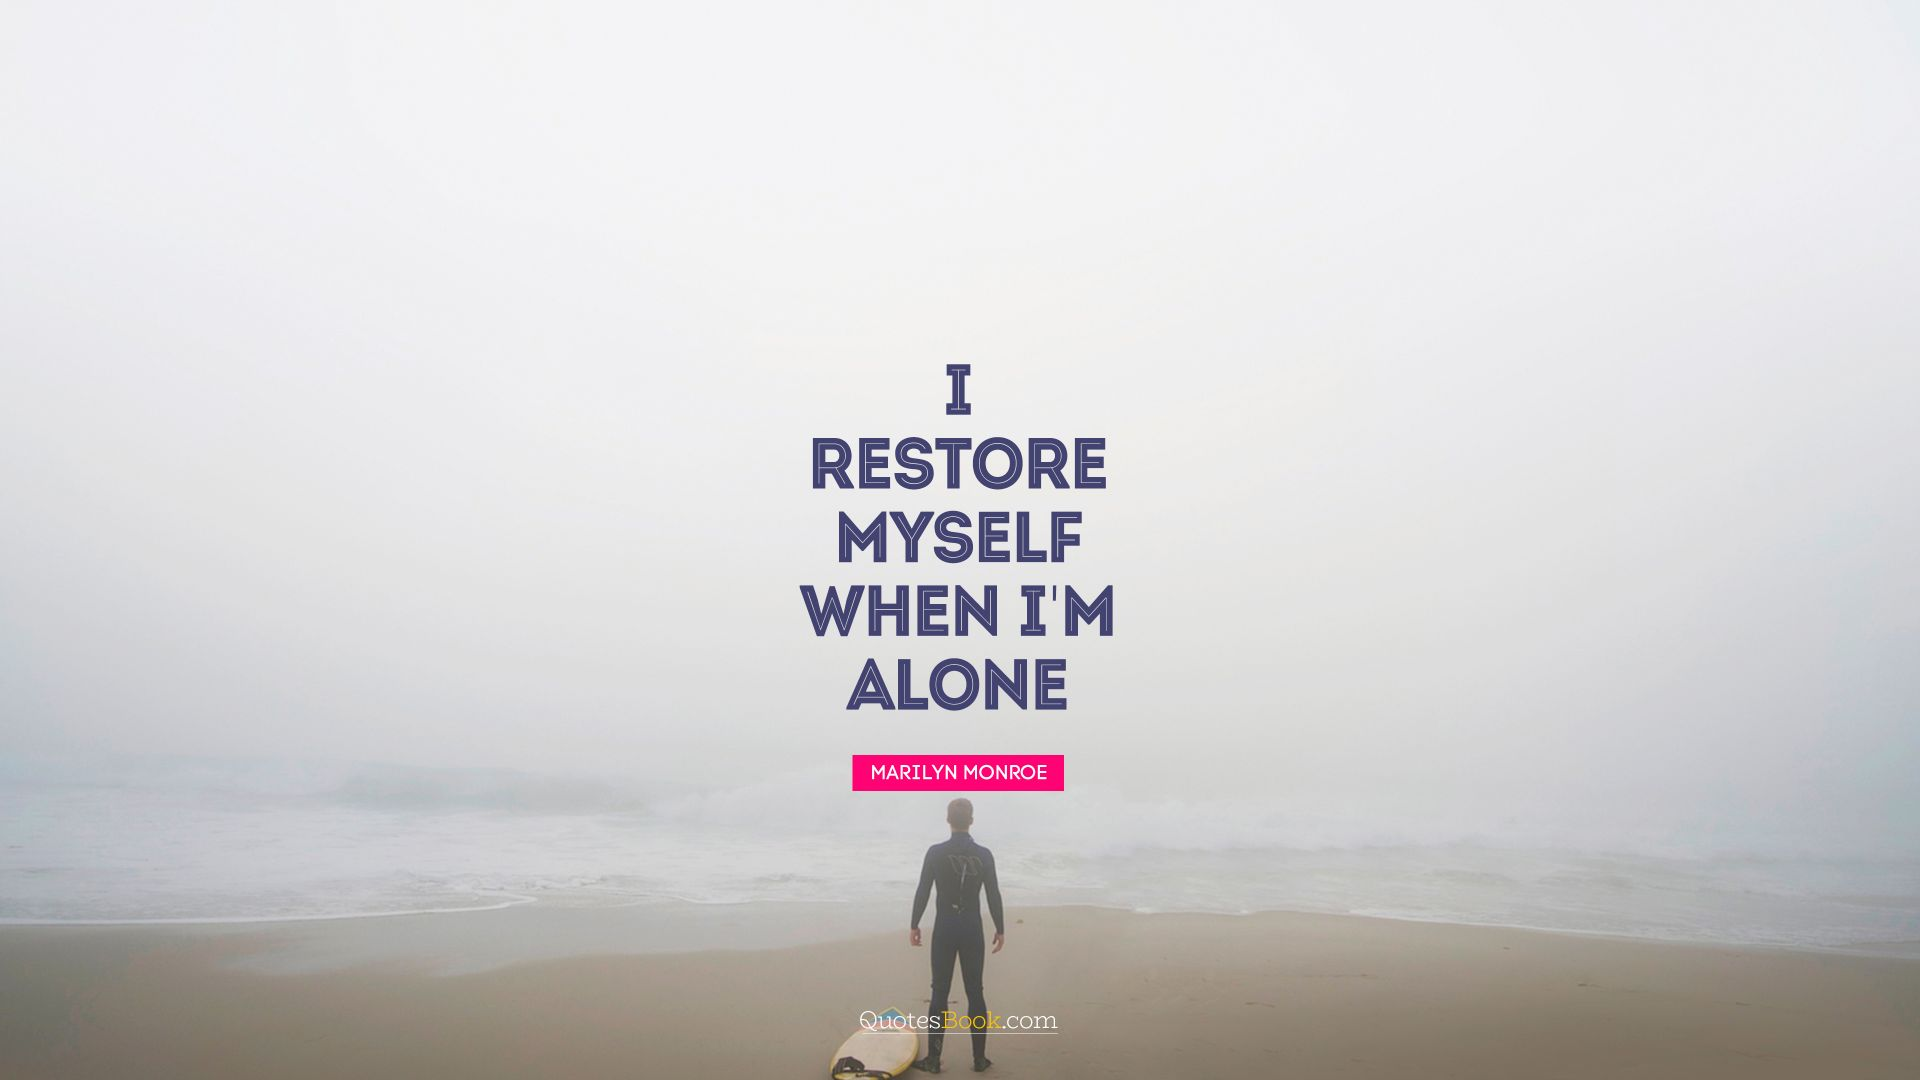 I restore myself when I'm alone. - Quote by Marilyn Monroe